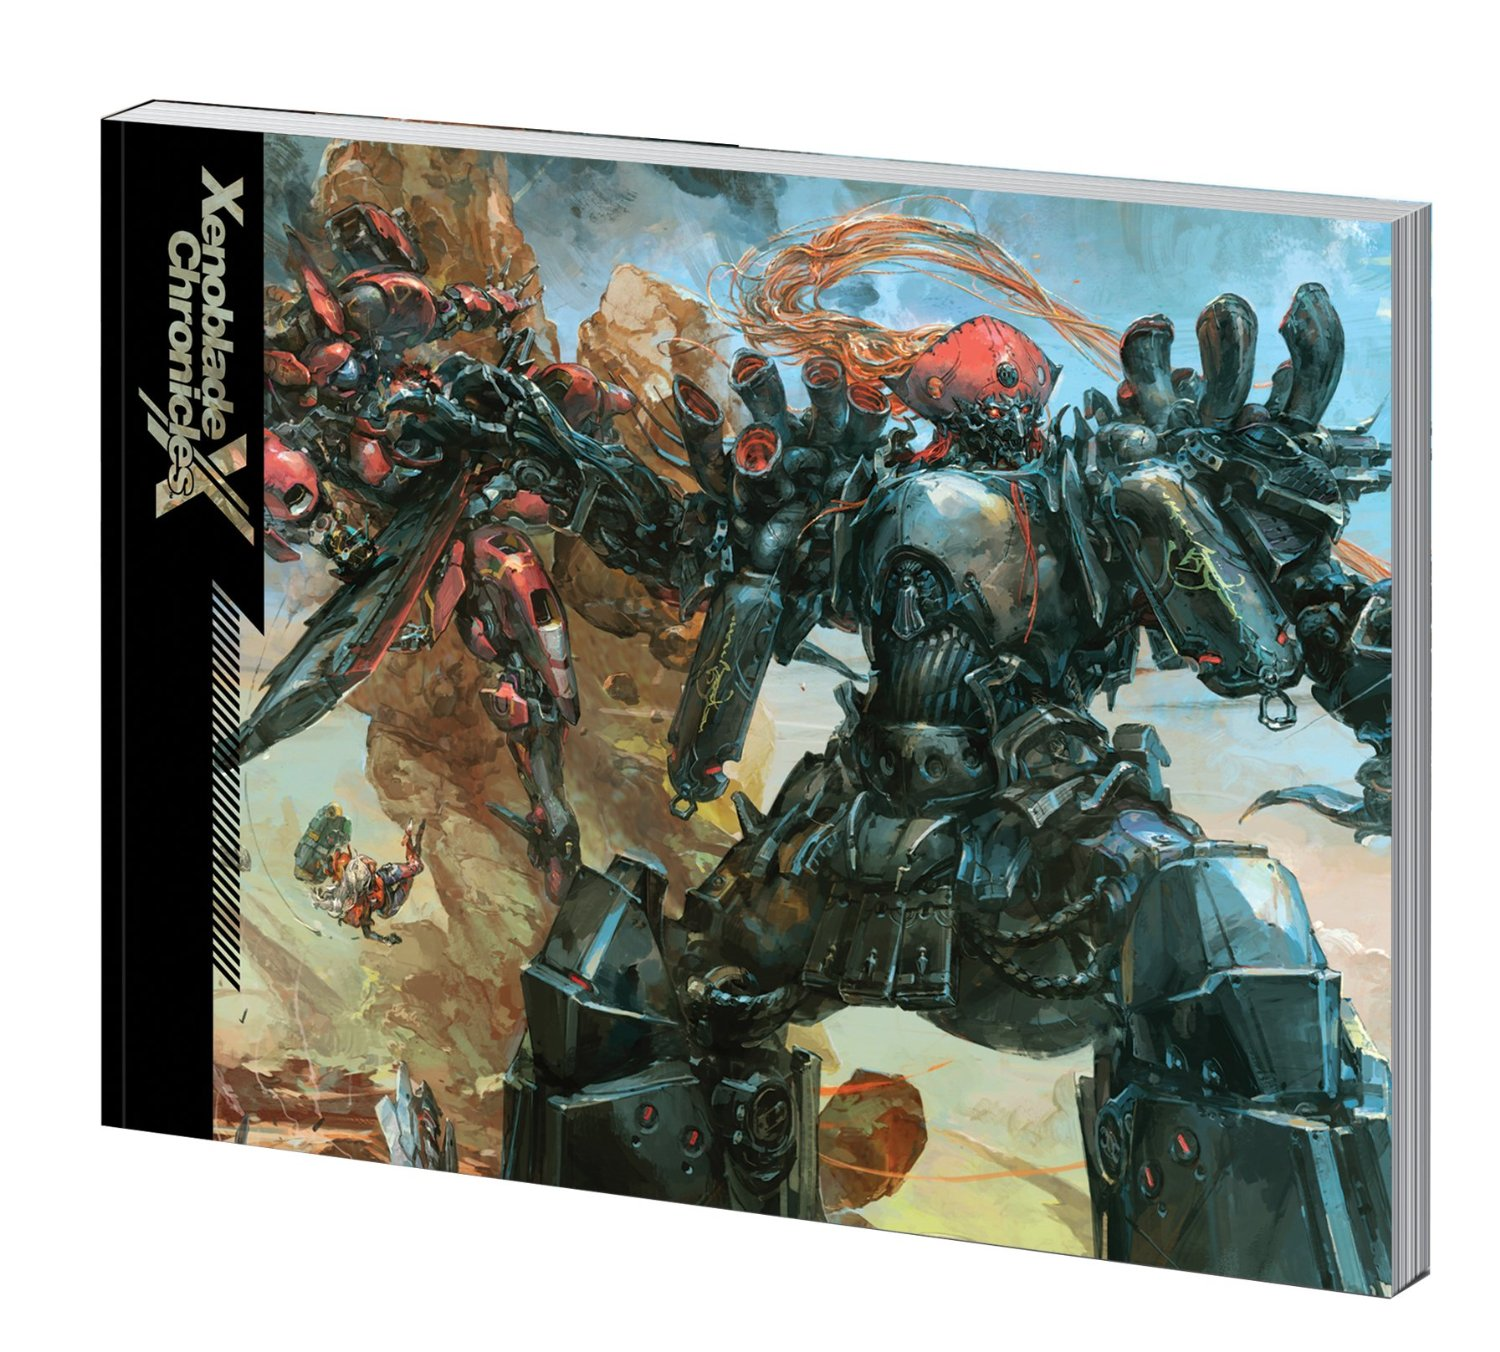 Pax prime xenoblade chronicles x limited edition for north america talking of the art and world of xenoblade chronicles x panel at pax prime nintendo uploaded a full recording of it on youtube gumiabroncs Choice Image